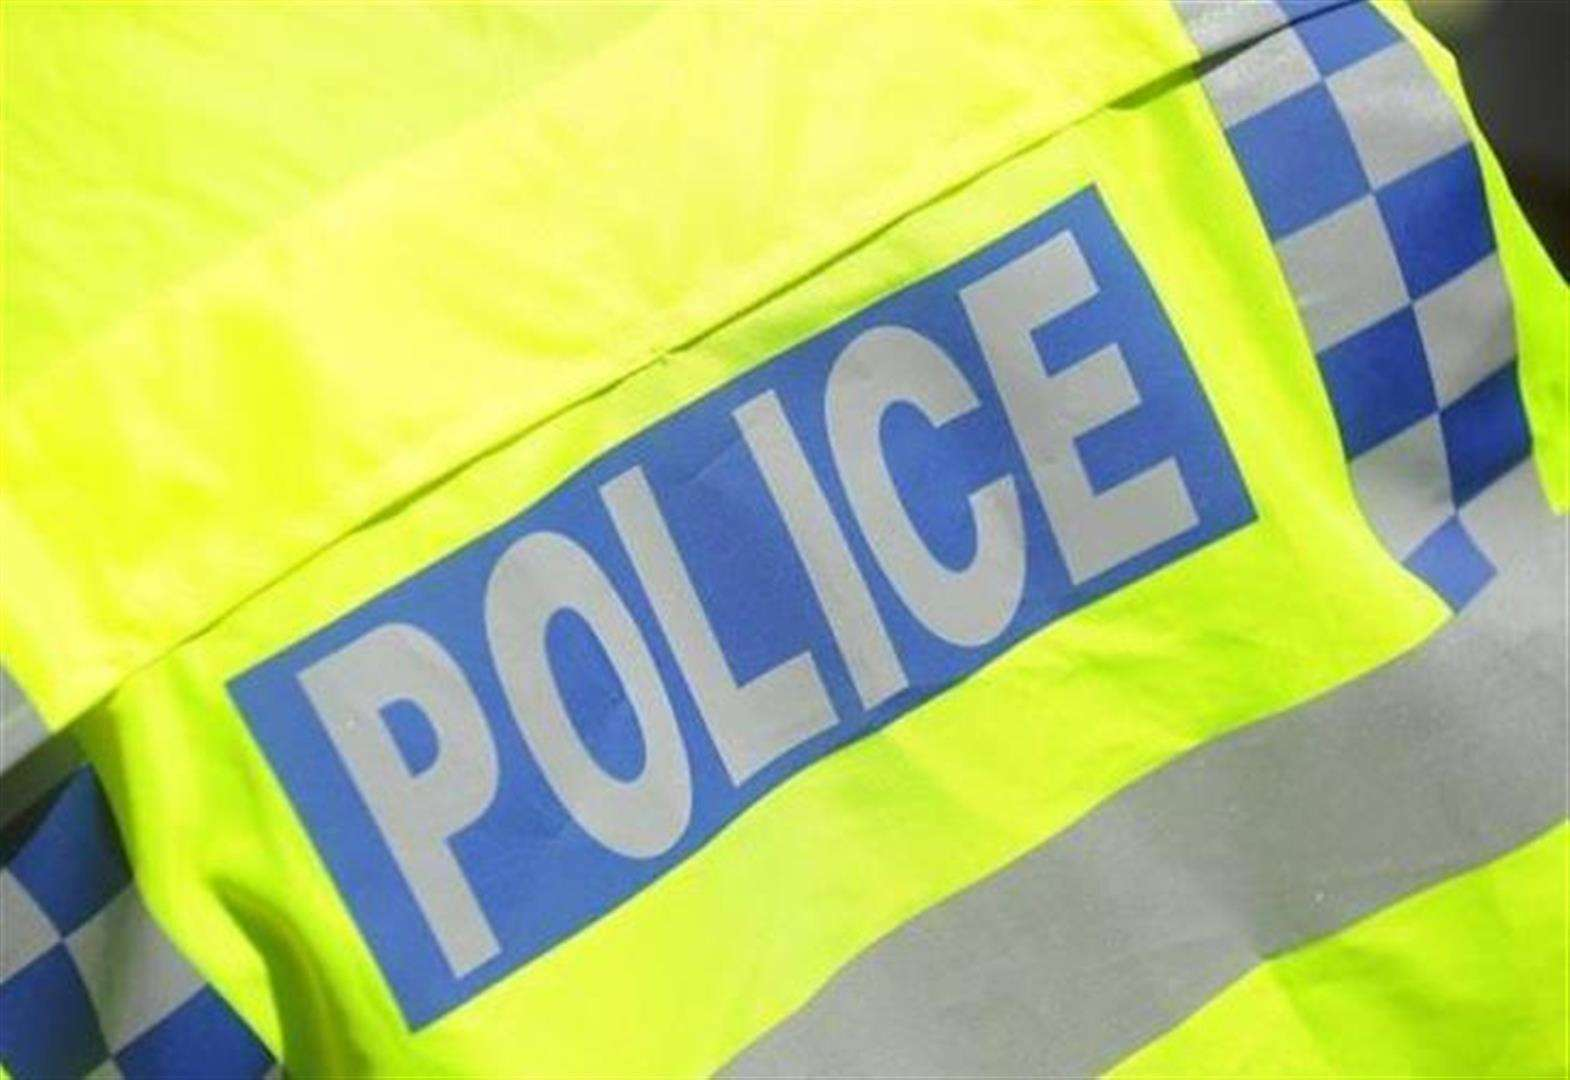 Three officers from Diss assaulted over Christmas